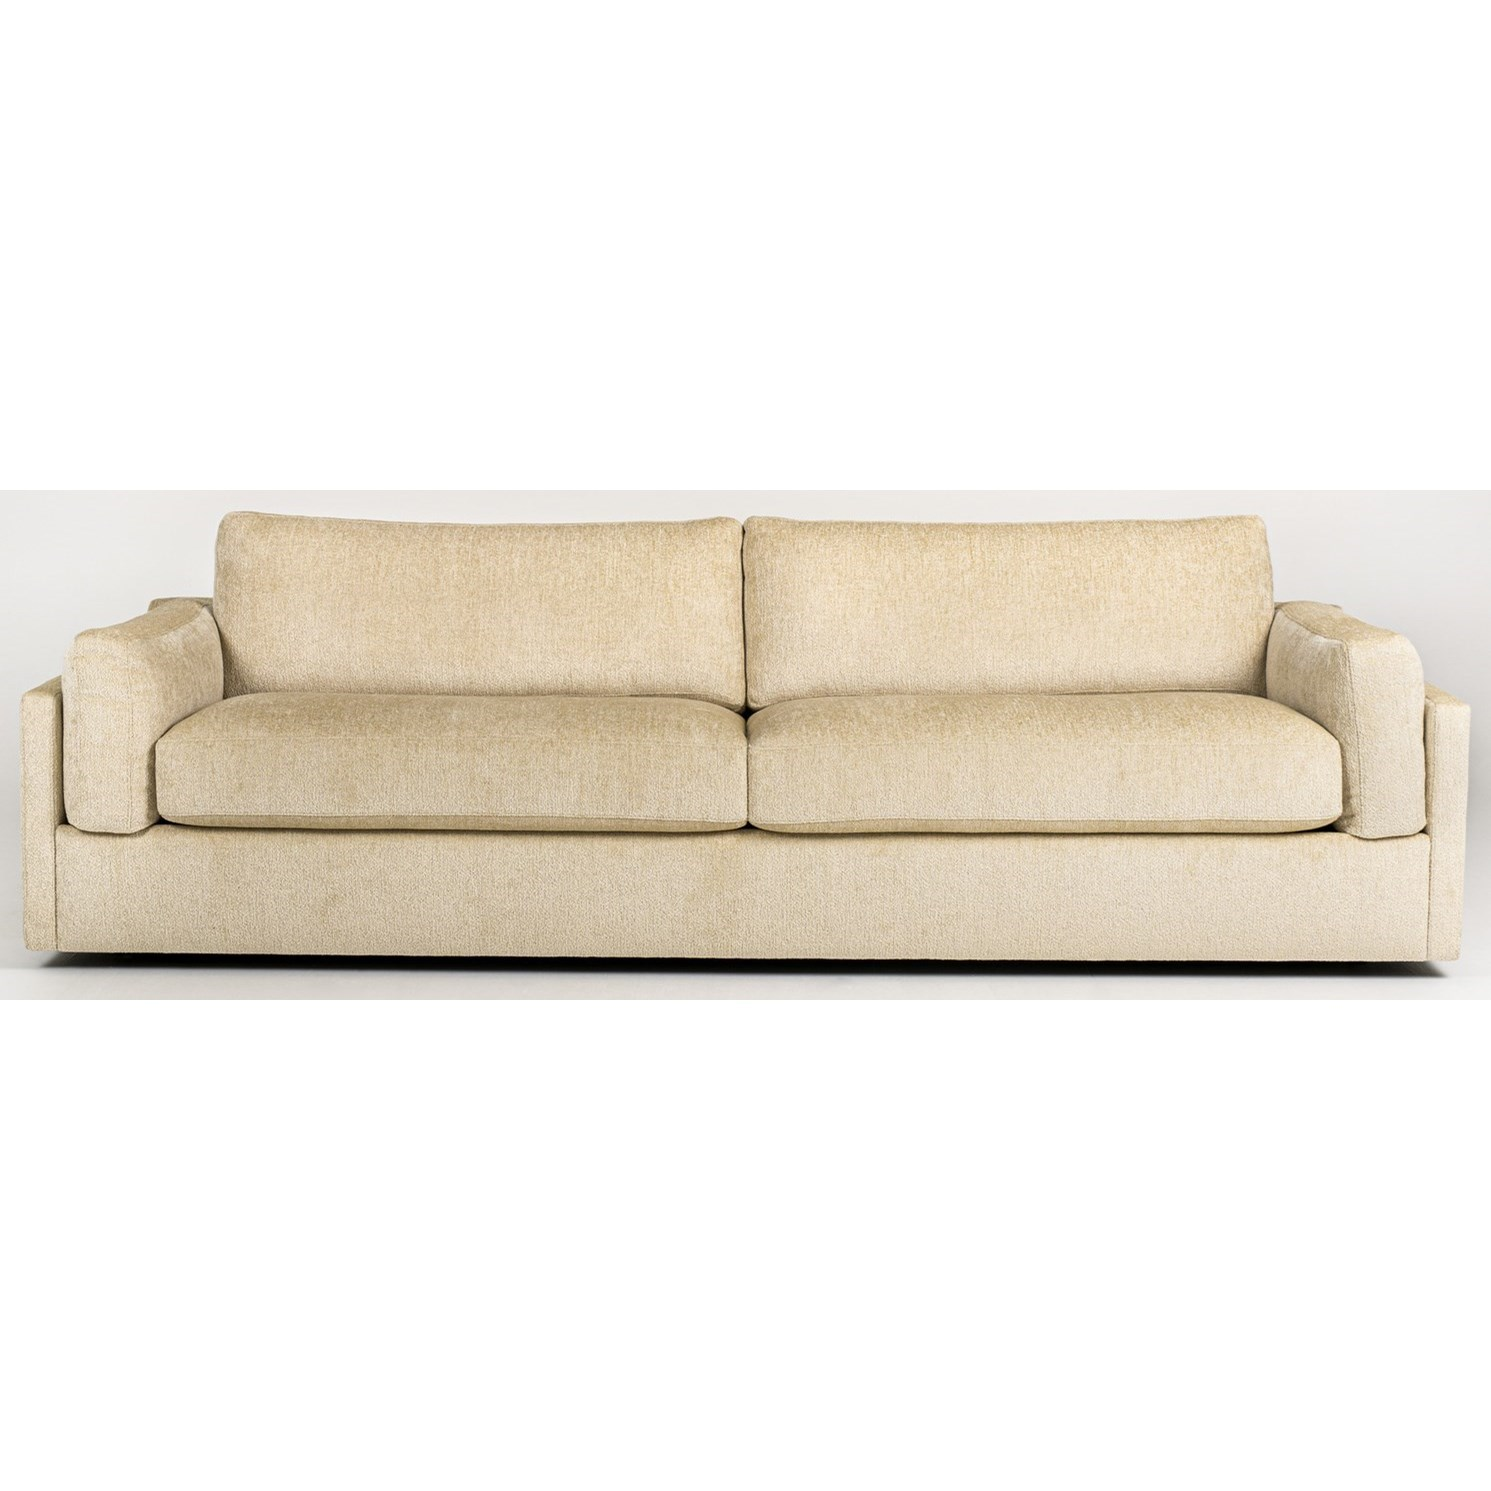 Cooks 2-Seat Sofa by American Leather at Baer's Furniture